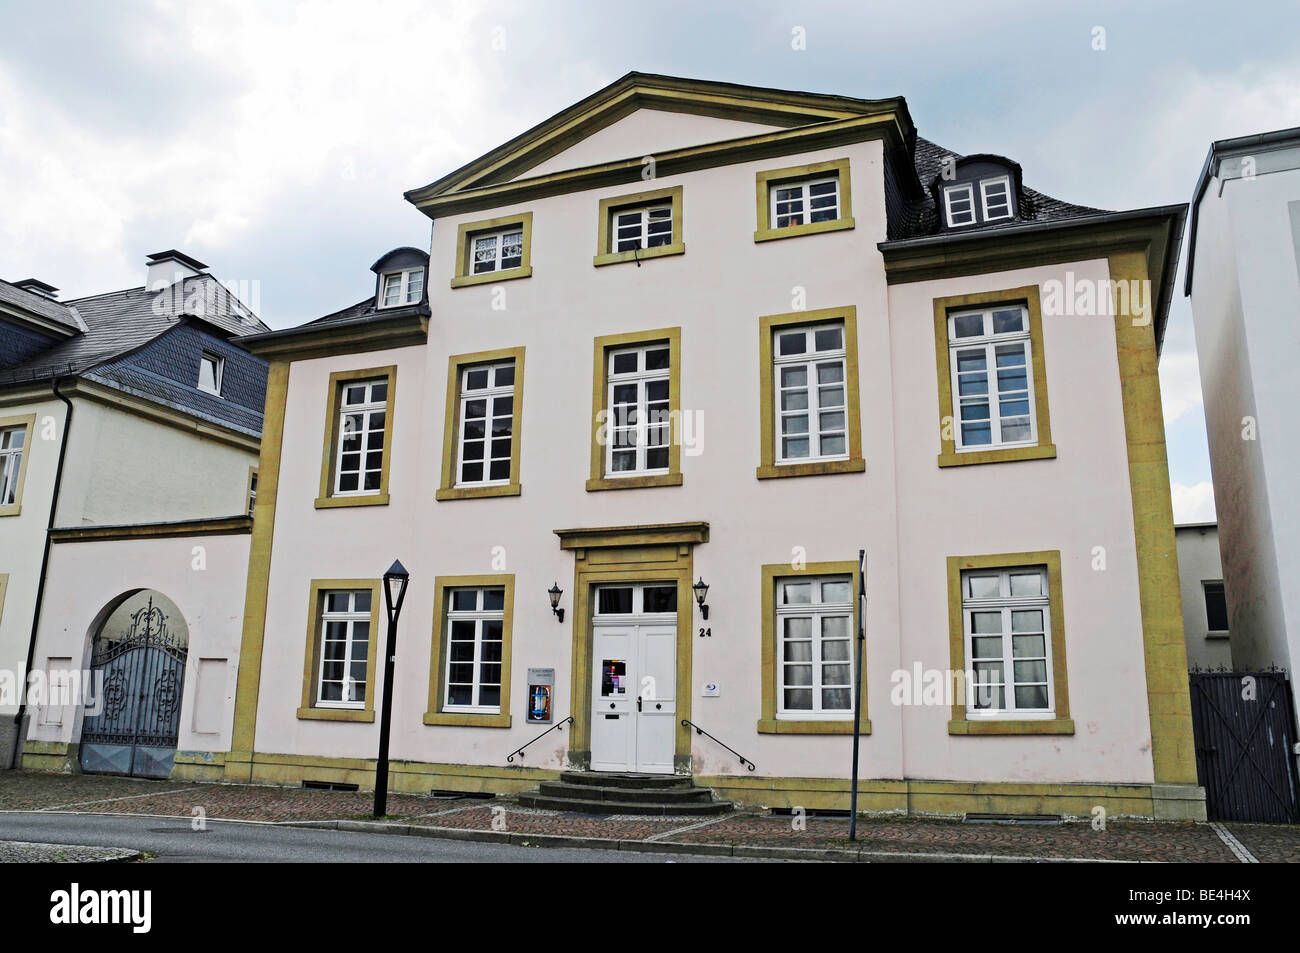 Kunstverein art association, exhibitions, art, culture, neo-classical Buergerhaus venue, Arnsberg, Sauerland region, - Stock Image